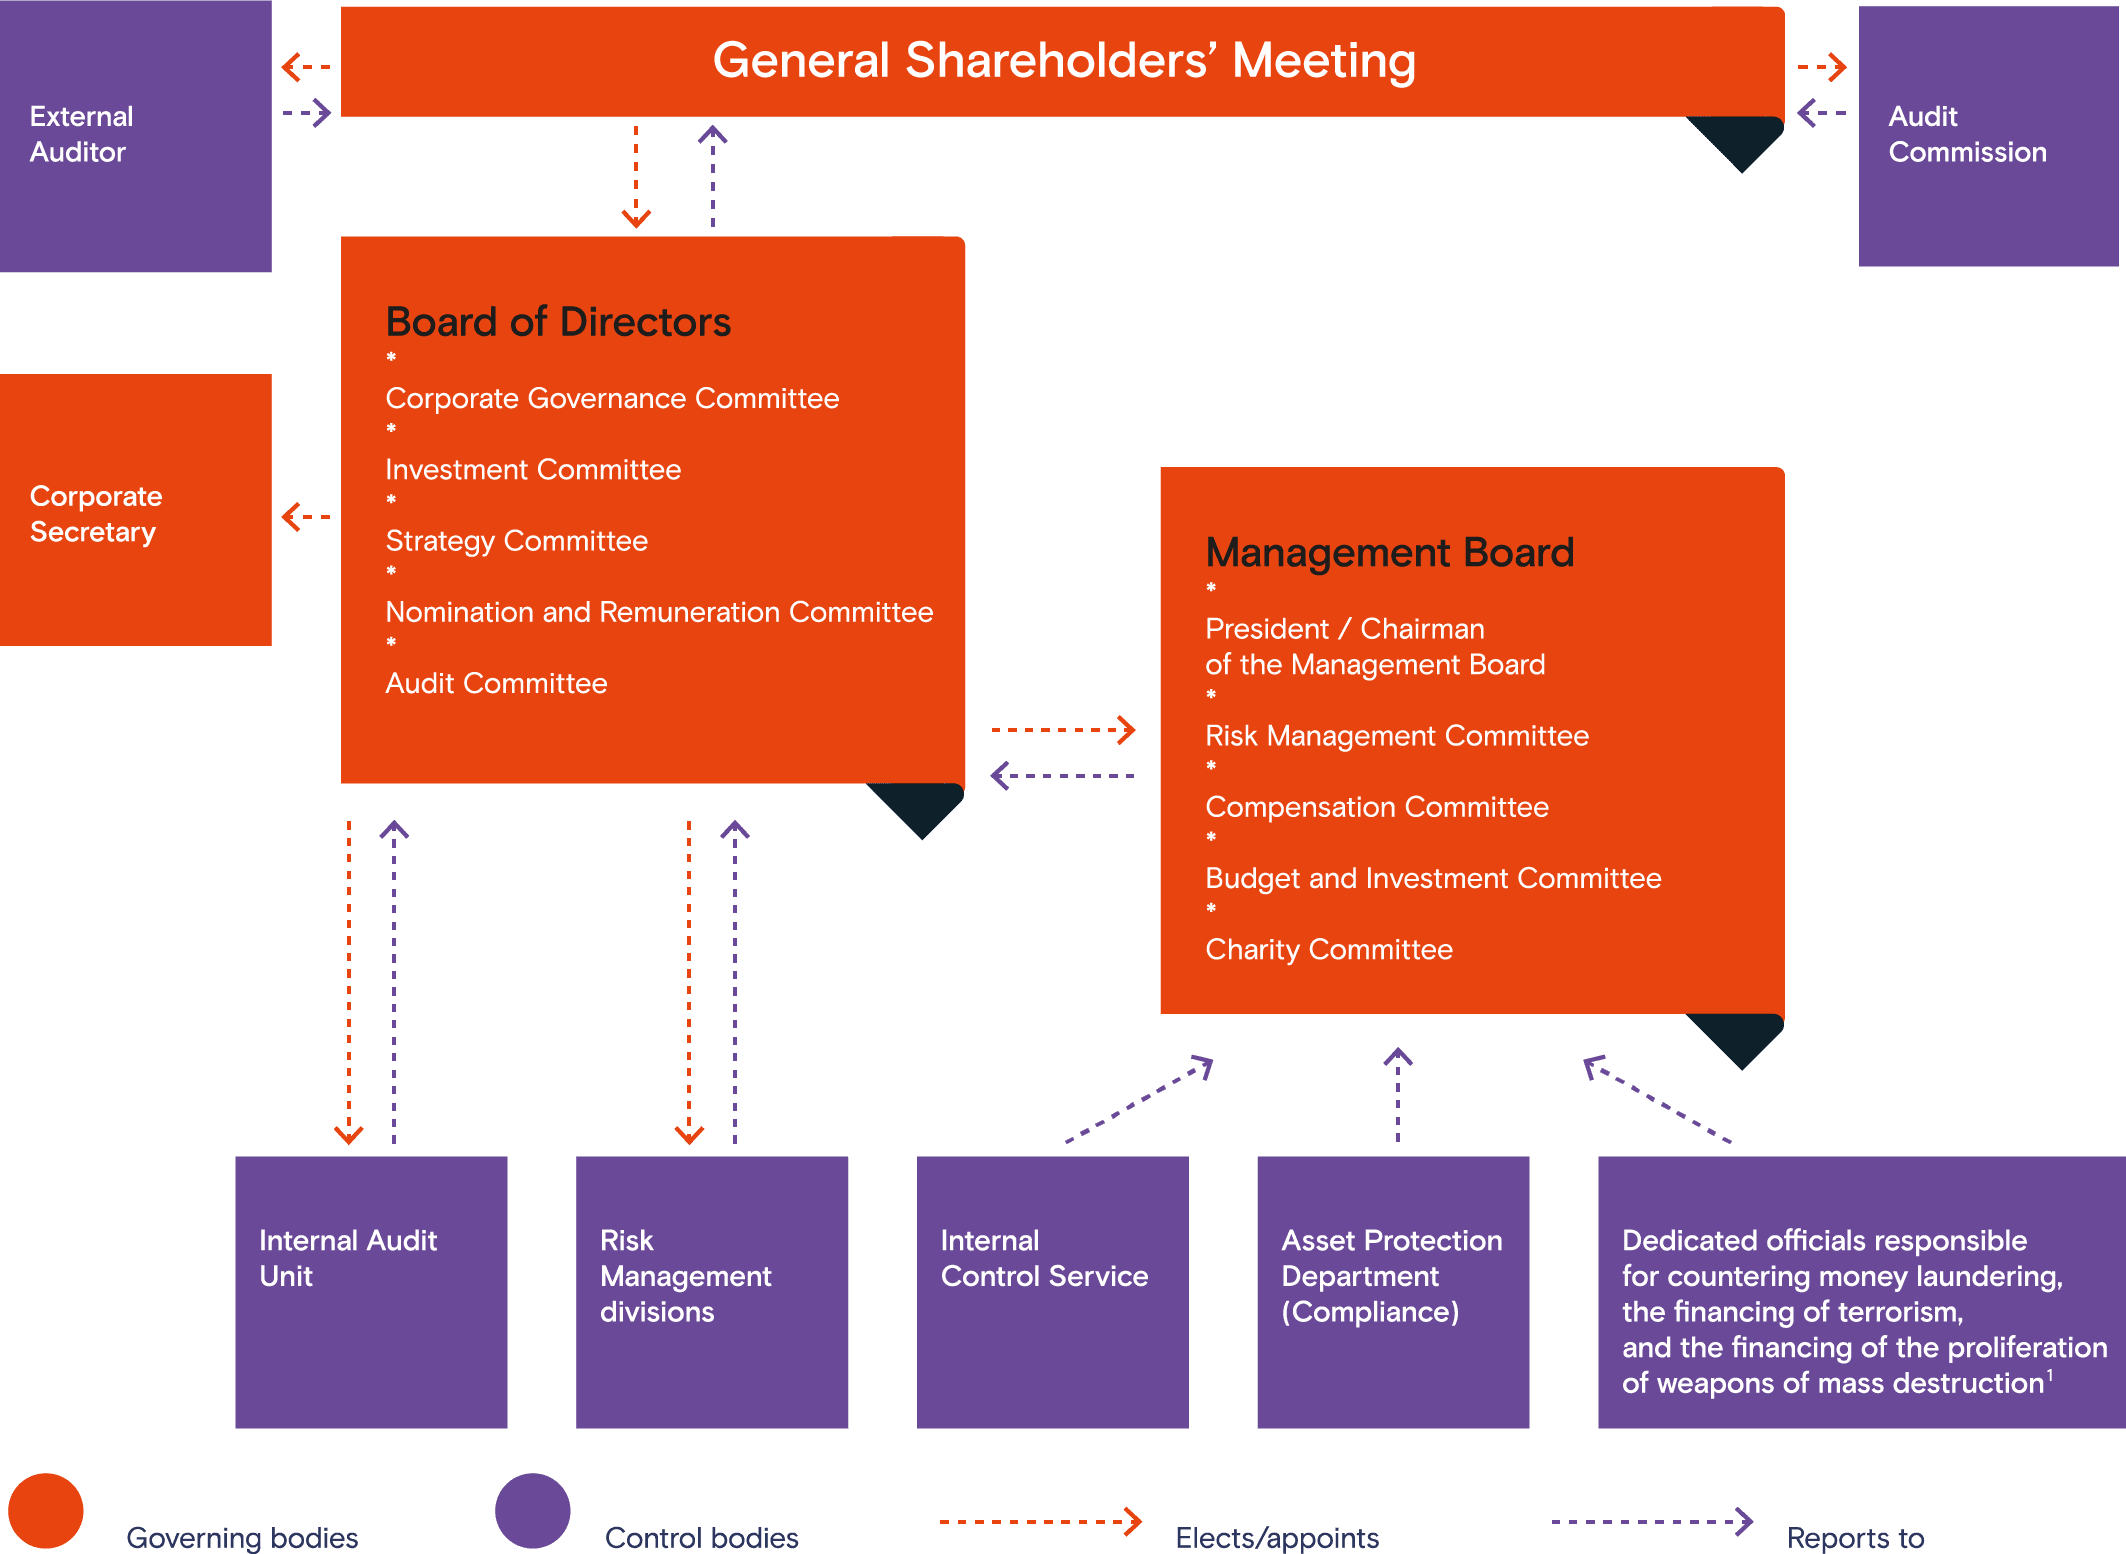 PJSC Rostelecom's Corporate Governance Structure